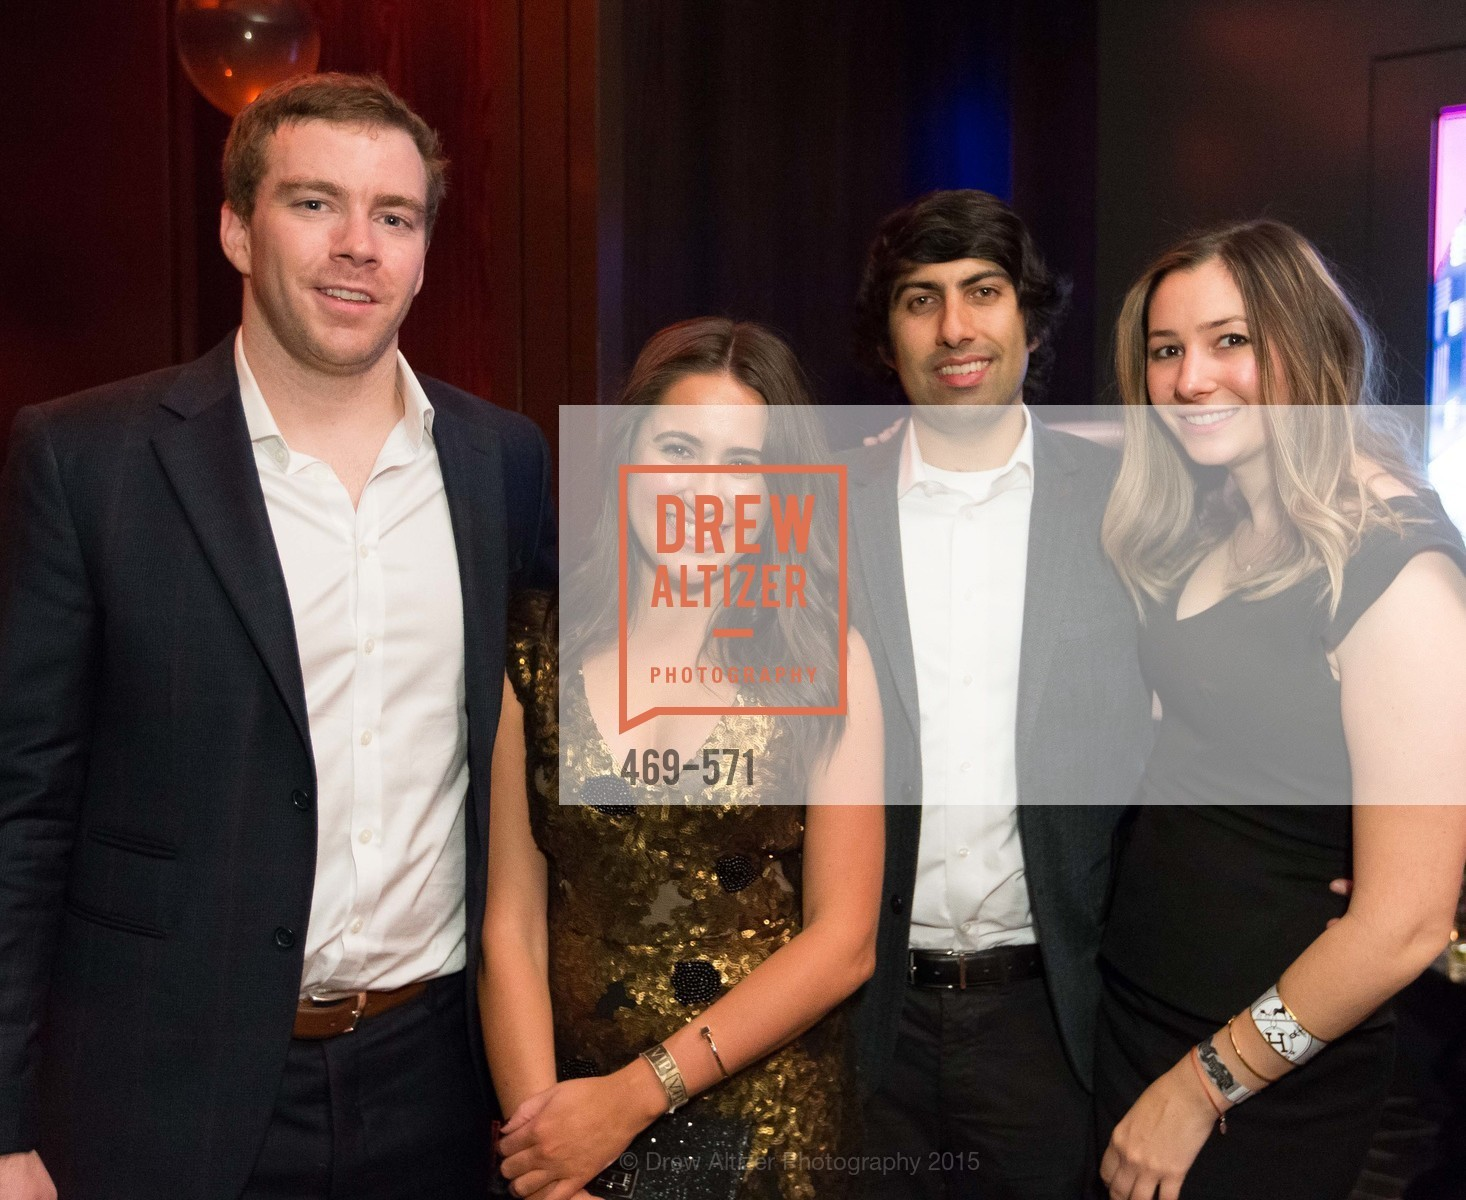 Matt Sanford, Morgan Moore, Ryan Loomba, Alex McClure, The 10th Annual San Francisco Social, W Hotel. 181 3rd St, November 21st, 2015,Drew Altizer, Drew Altizer Photography, full-service agency, private events, San Francisco photographer, photographer california